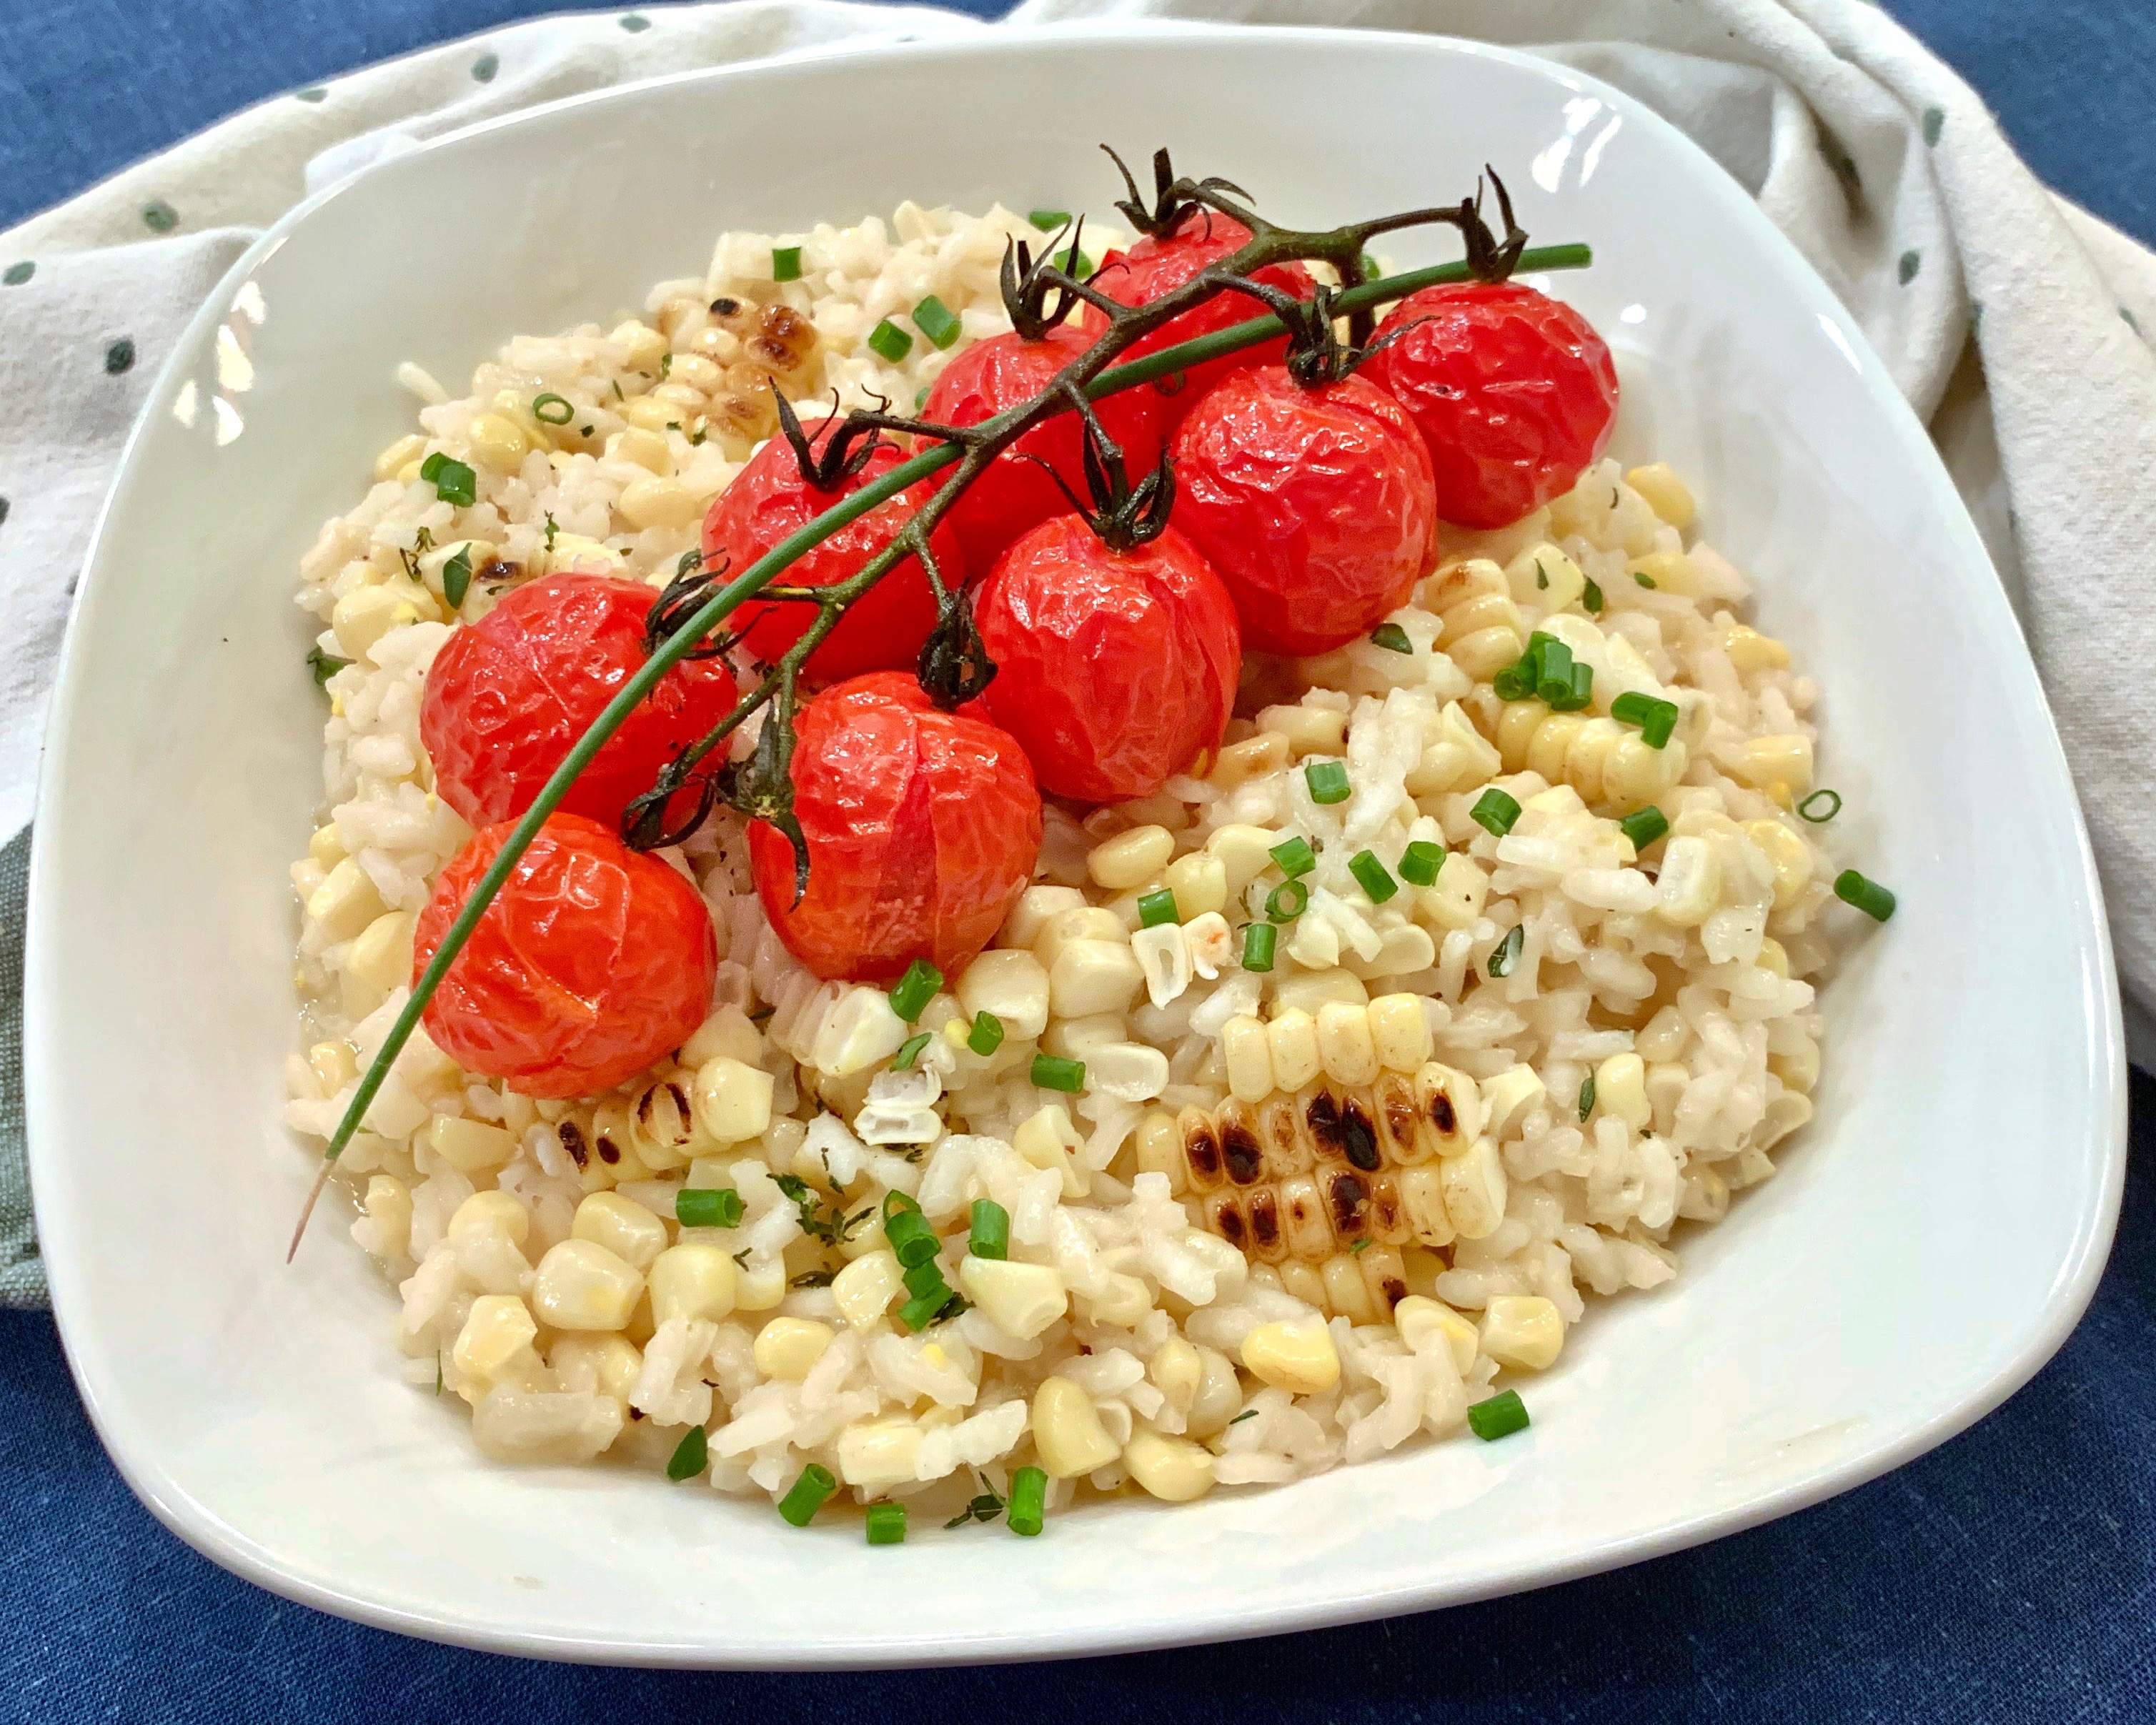 Corn Risotto With Roasted Cherry Tomatoes